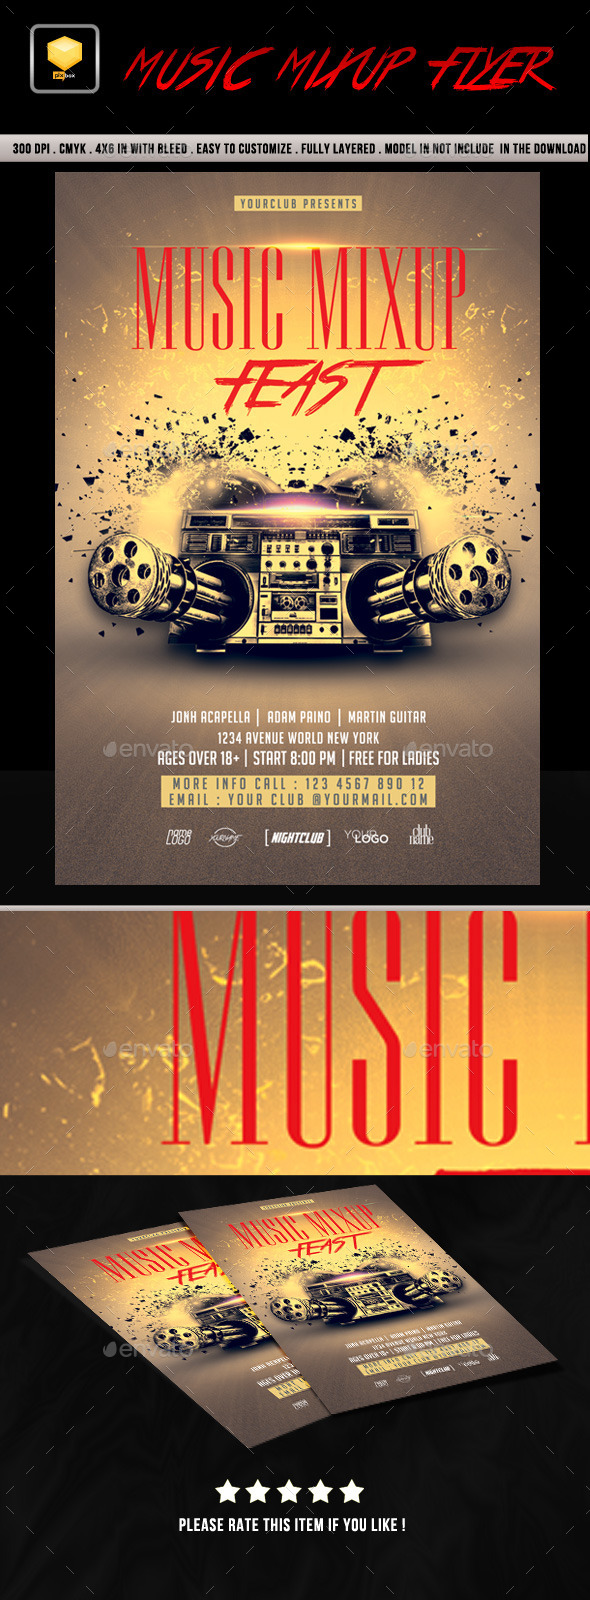 Music Mix-up Flyer - Clubs & Parties Events